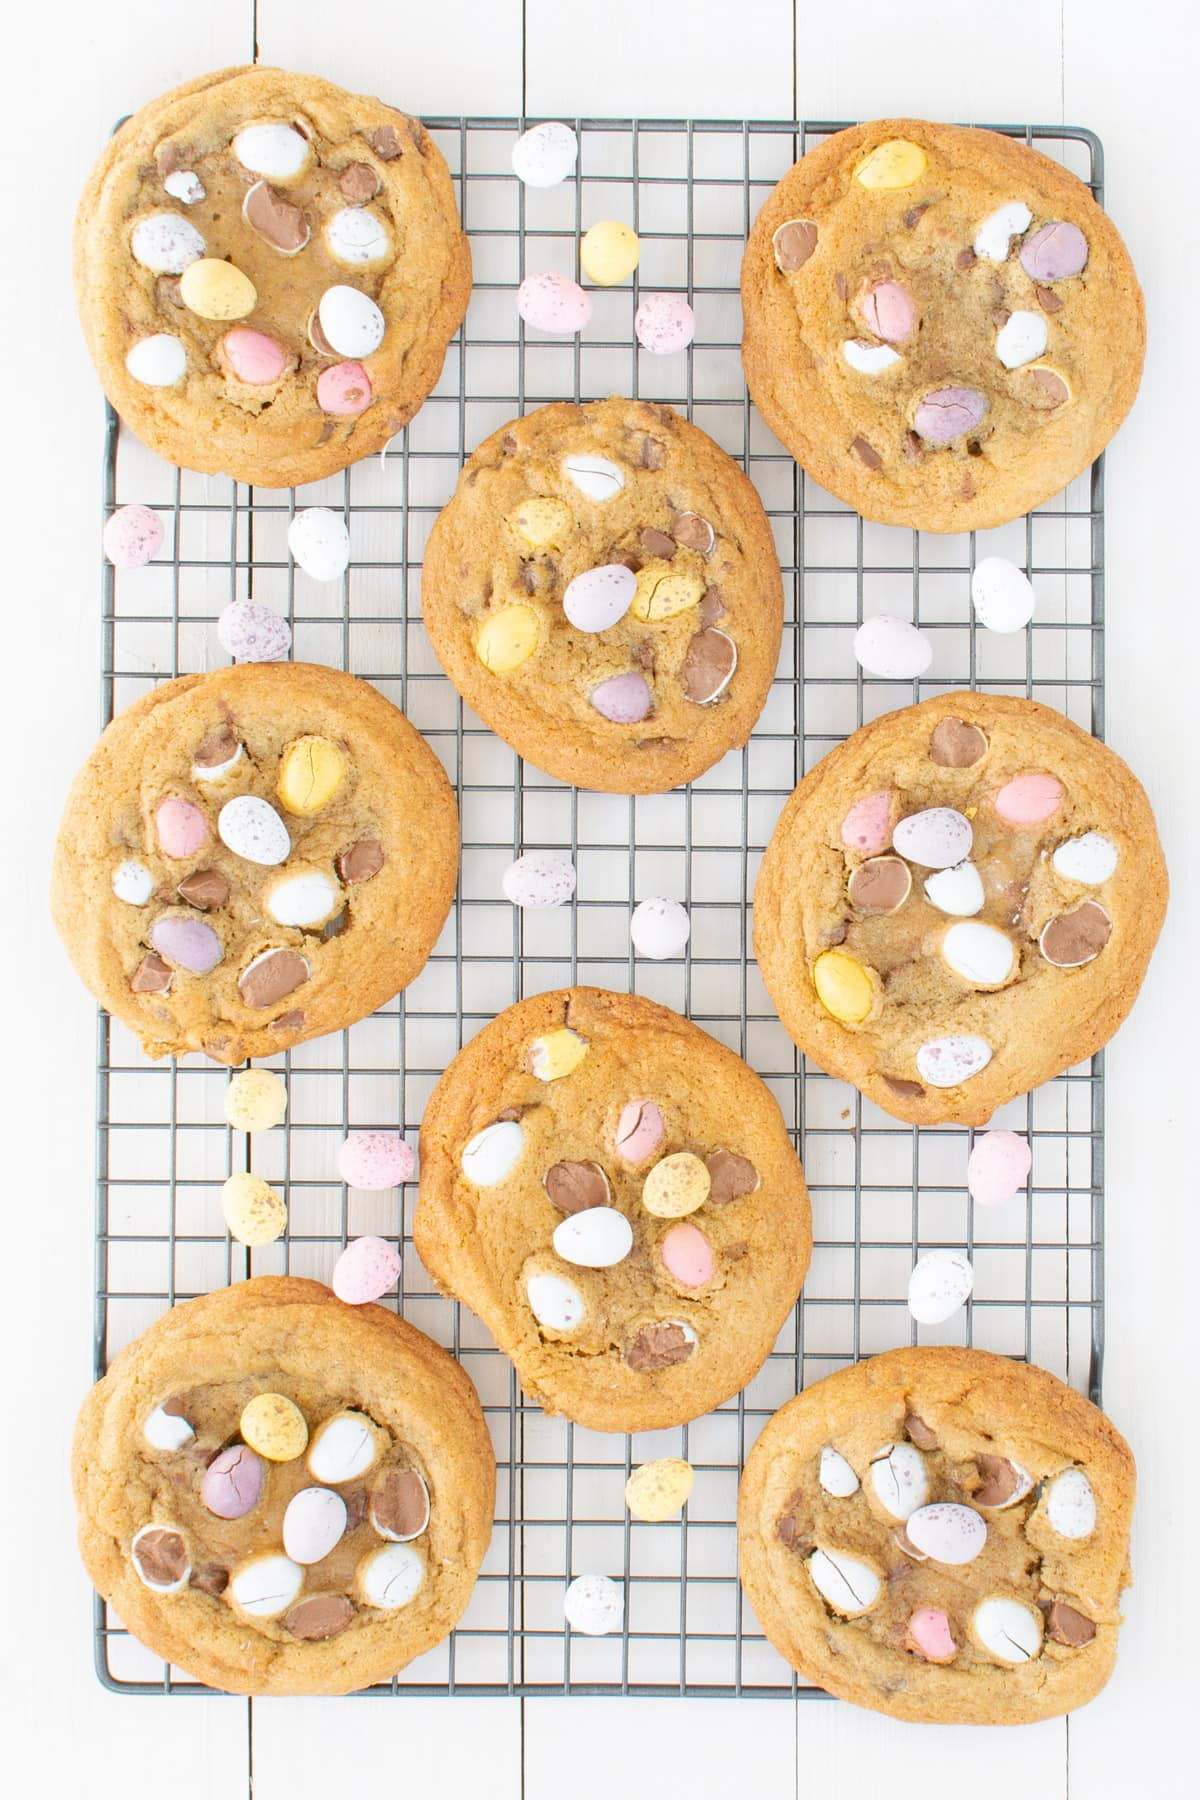 Mini egg cookies on a cooking rack.